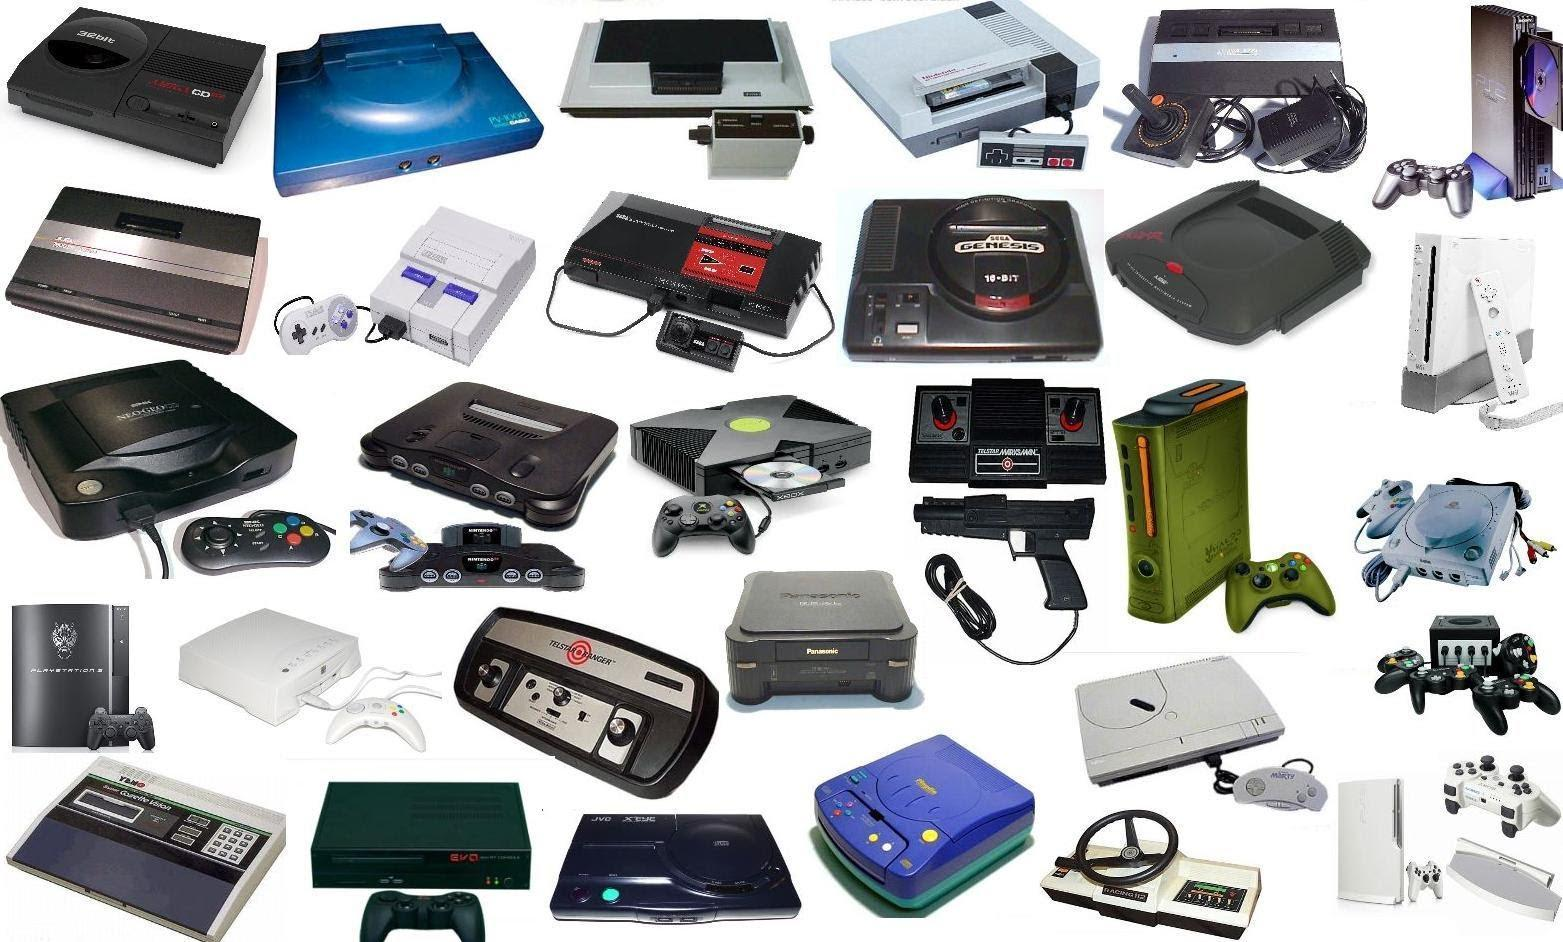 Which is the best selling console ever and which the second best selling one?